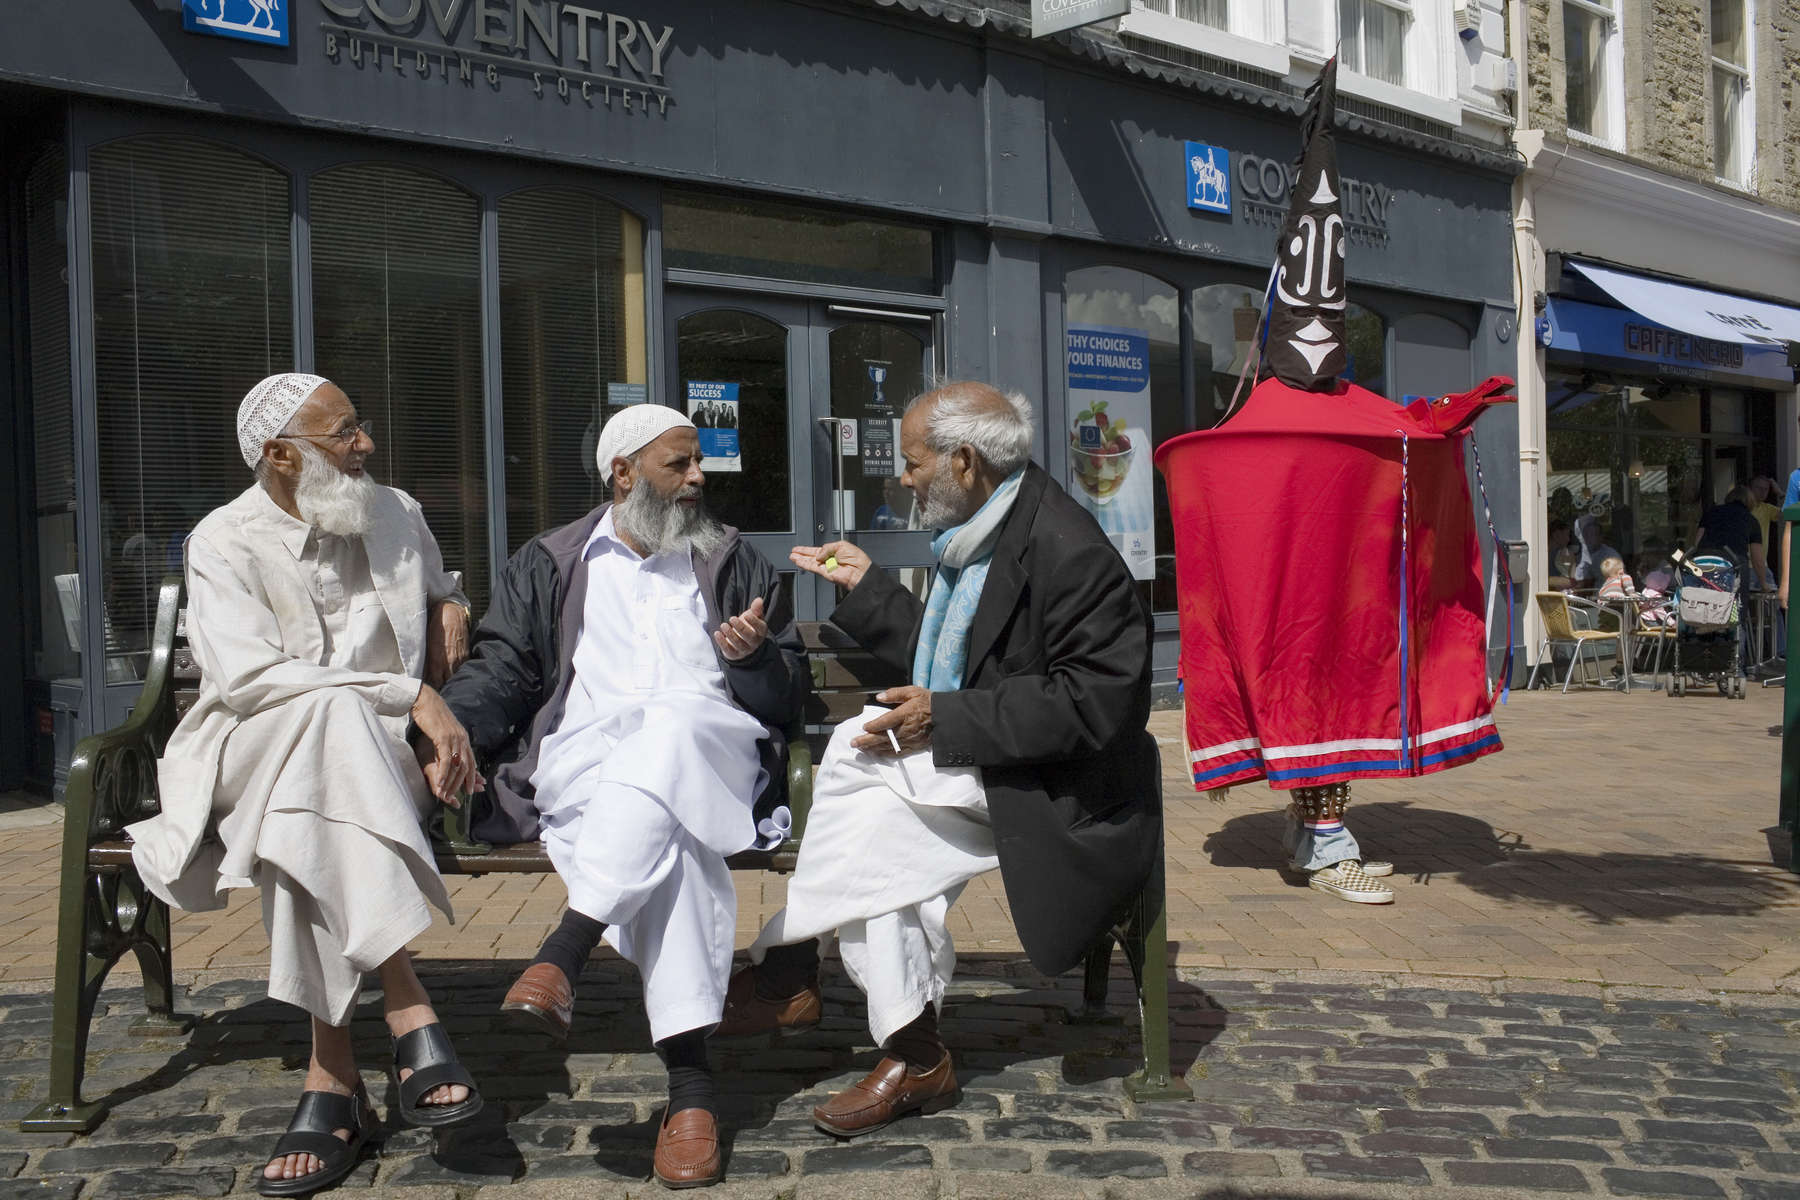 Three Muslim men chat on a bench as a Cobb's horse parades through the Oxfordshire town of Banbury as part of the annual hobby horse festival. A hobby horse is puppet-like costume giving the wearer the appearance of a man on horseback. Cobb's Horse was created in 1976 when the newly revived Adderbury Morris Men had been invited to dance at the Sidmouth Festival and one very new dancer, Stephen Wass, not yet qualified as a dancer created the beast. The name 'Cobb's Horse' comes from an Adderbury legend to the effect that the ghost of wicked Squire Cobb careers through the village in his coach pulled by phantom horses, this is one of them.